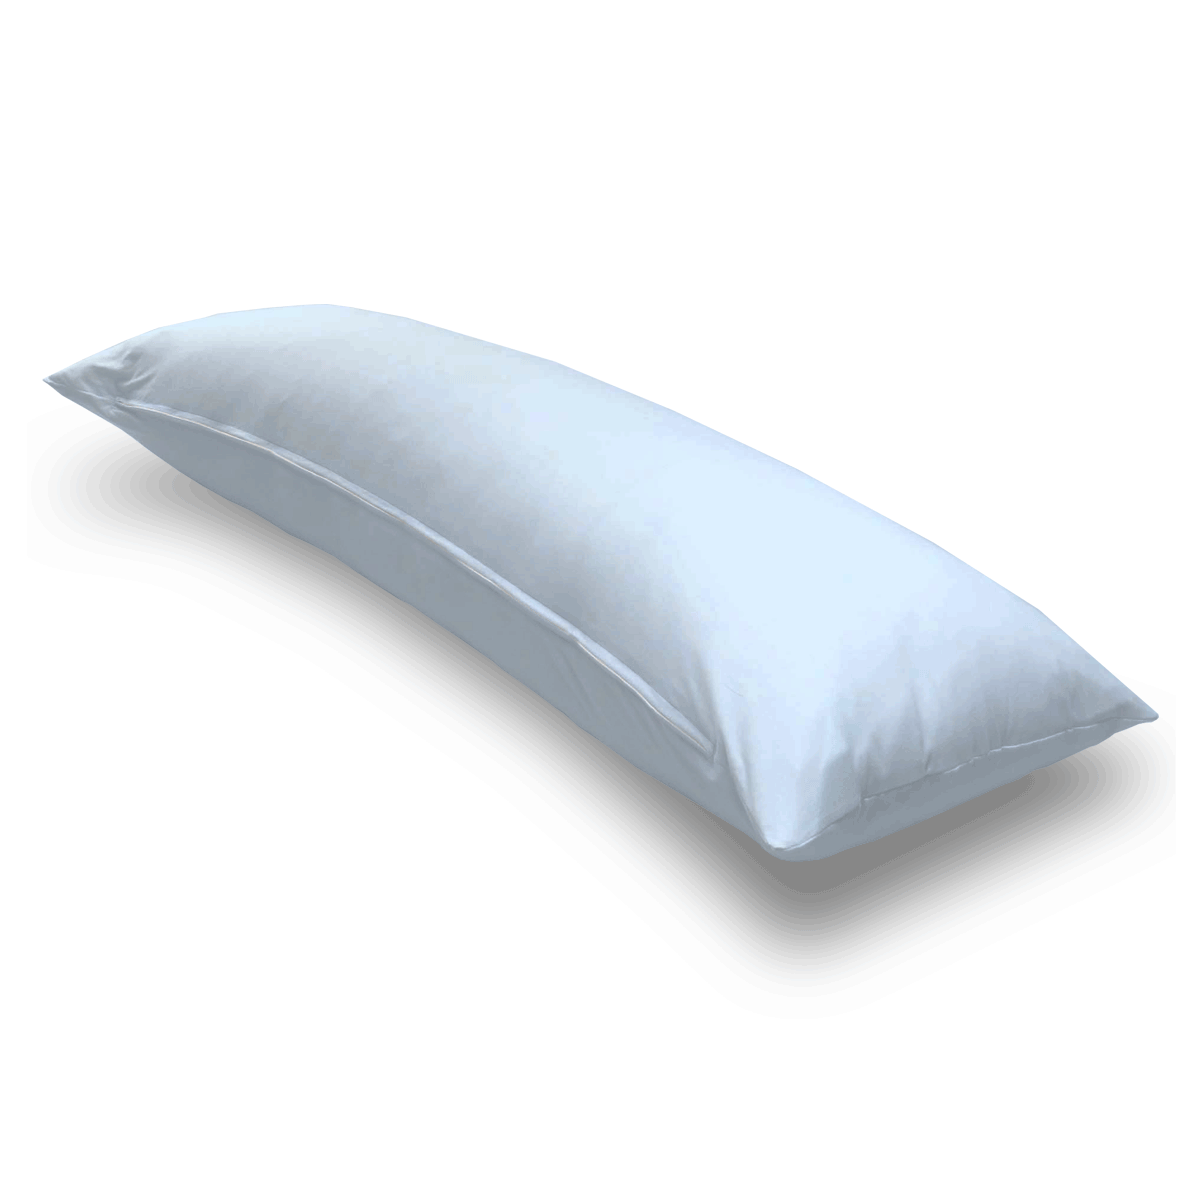 cotton body pillow cases jersey knit